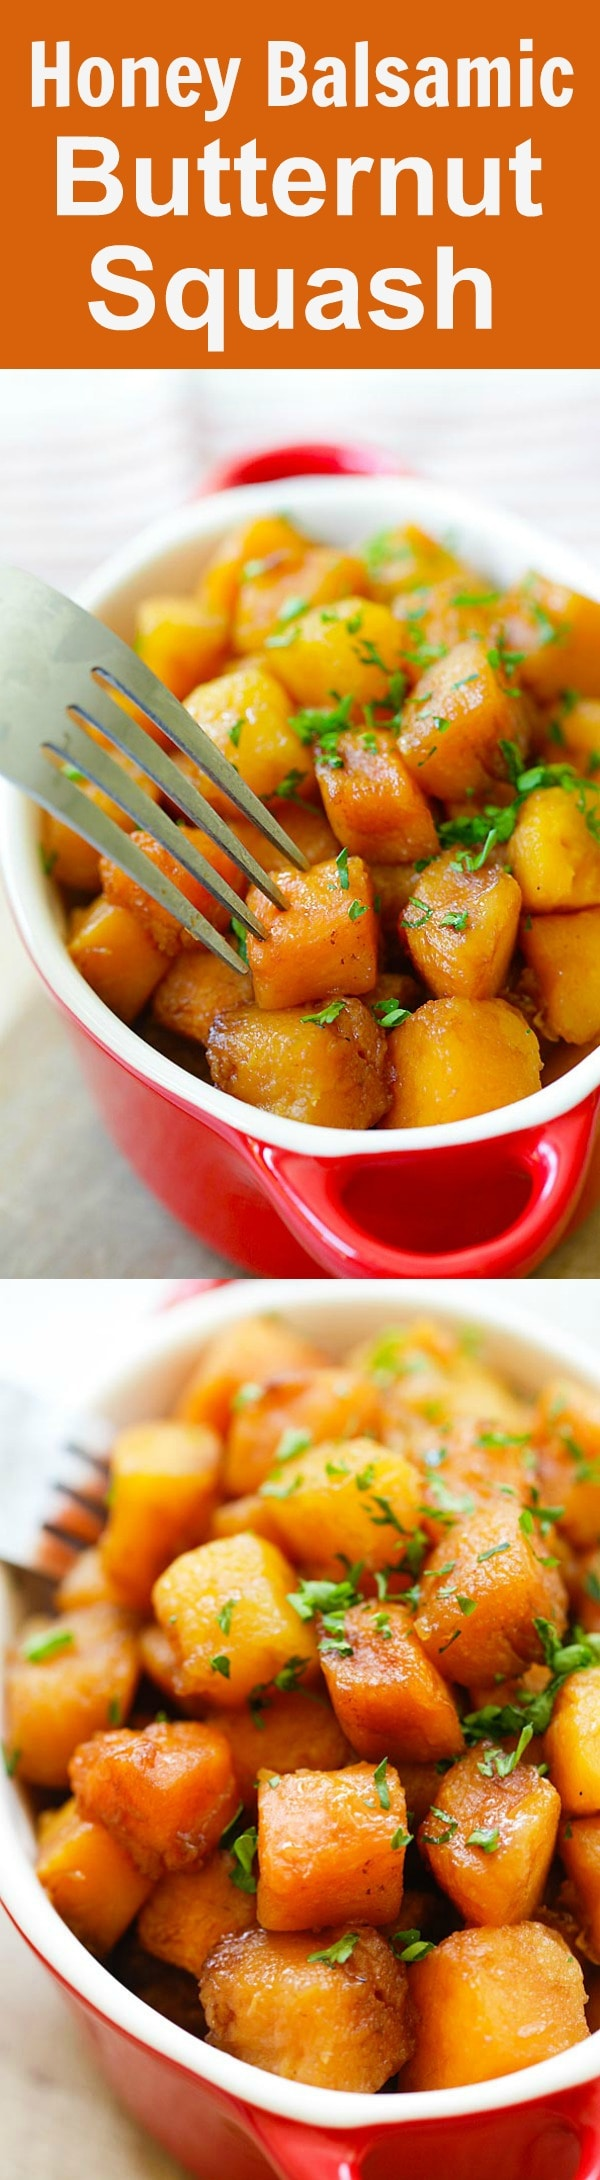 Honey Balsamic Butternut Squash - roasted butternut squash with honey balsamic. A perfect side dish recipe that takes only 20 mins. | rasamalaysia.com